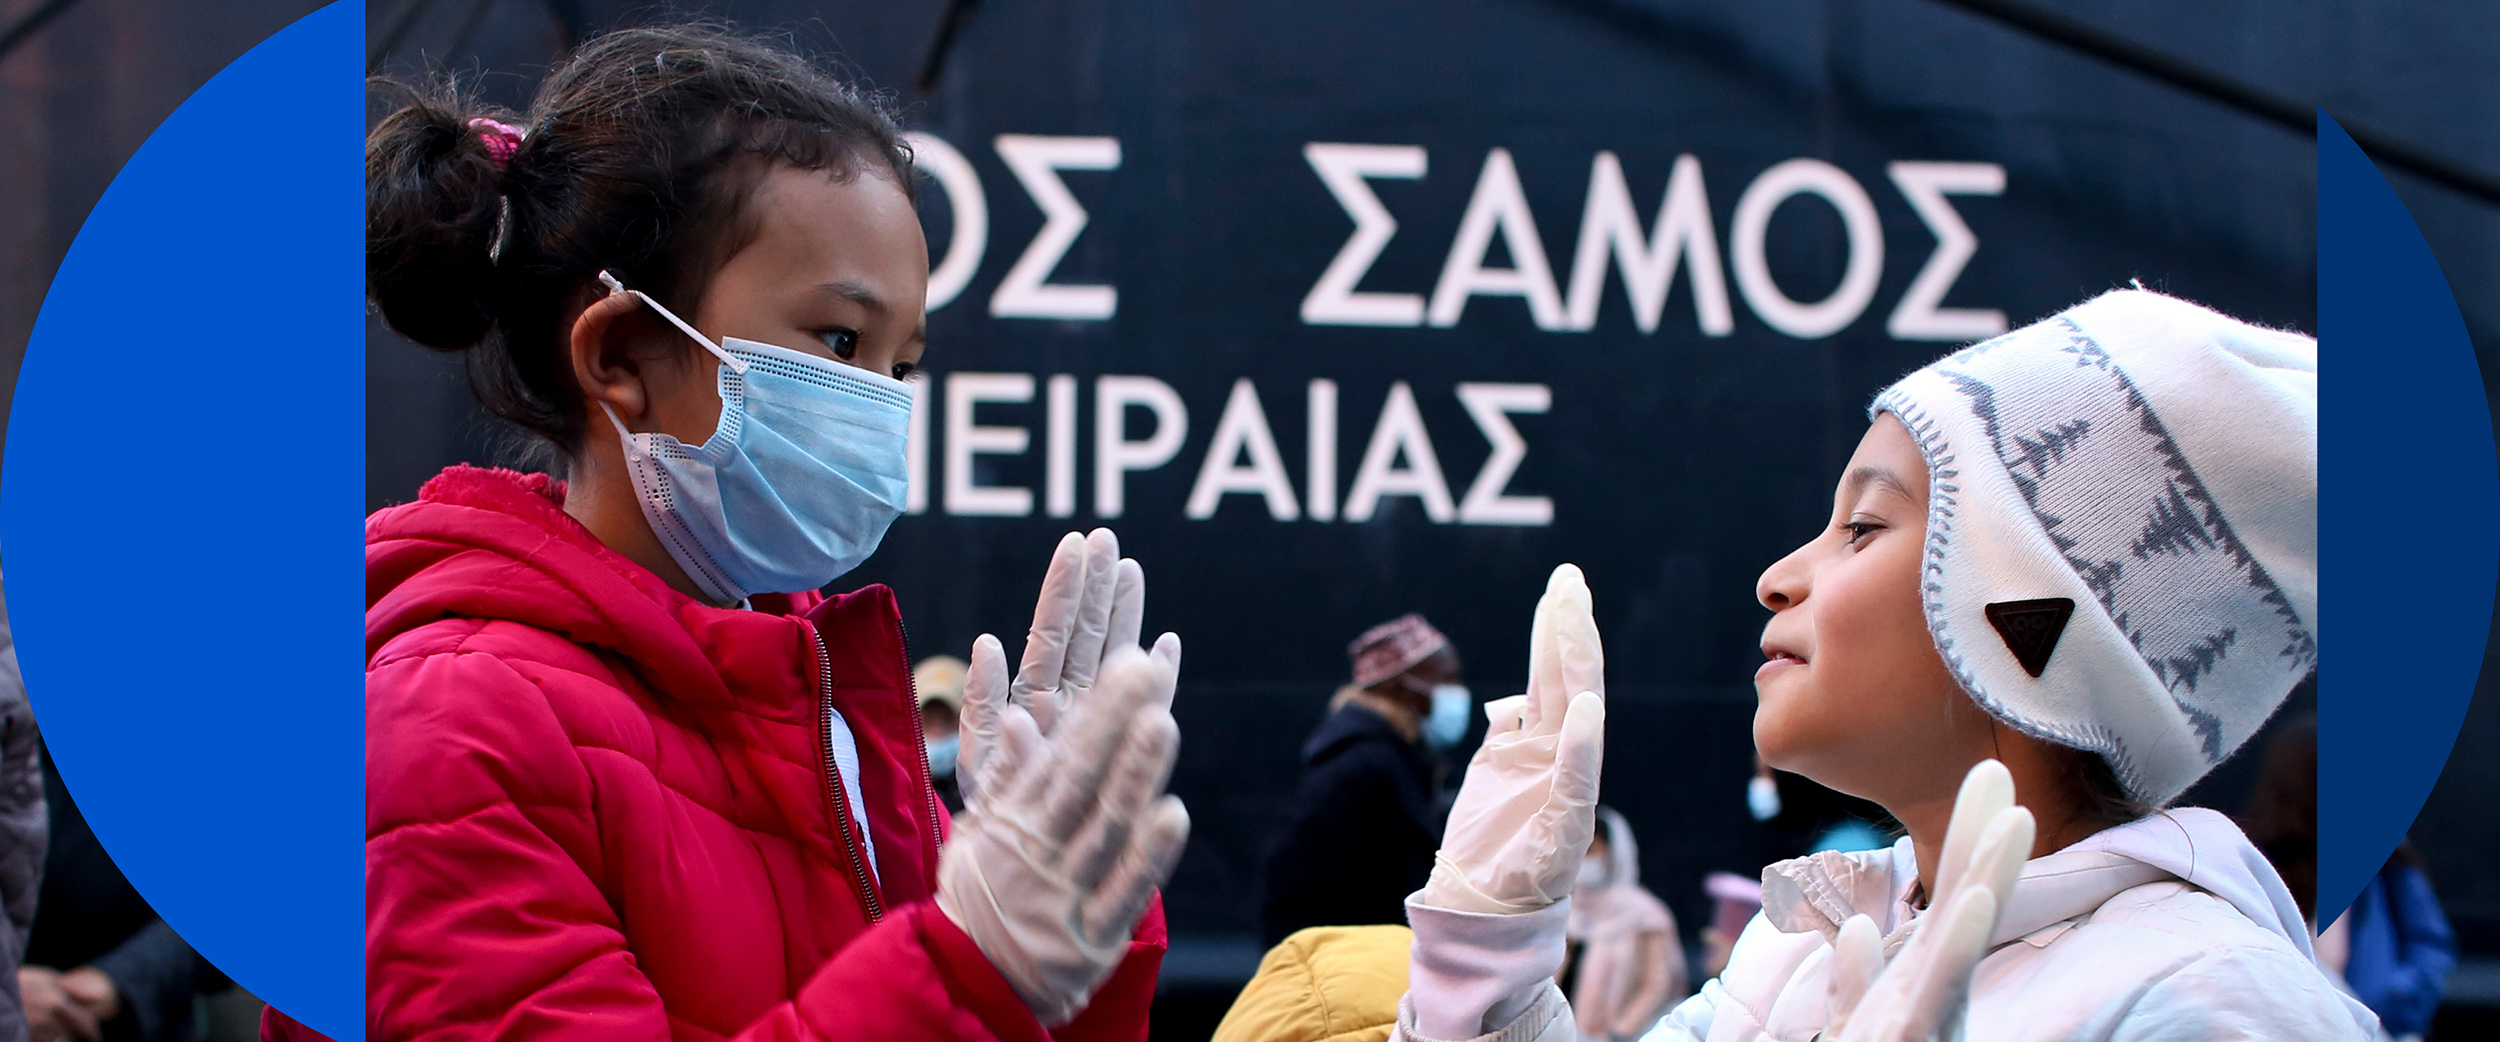 Migrant children from the Moria camp in Lesbos island wearing masks to prevent the spread of the coronavirus, playing. Composite image.